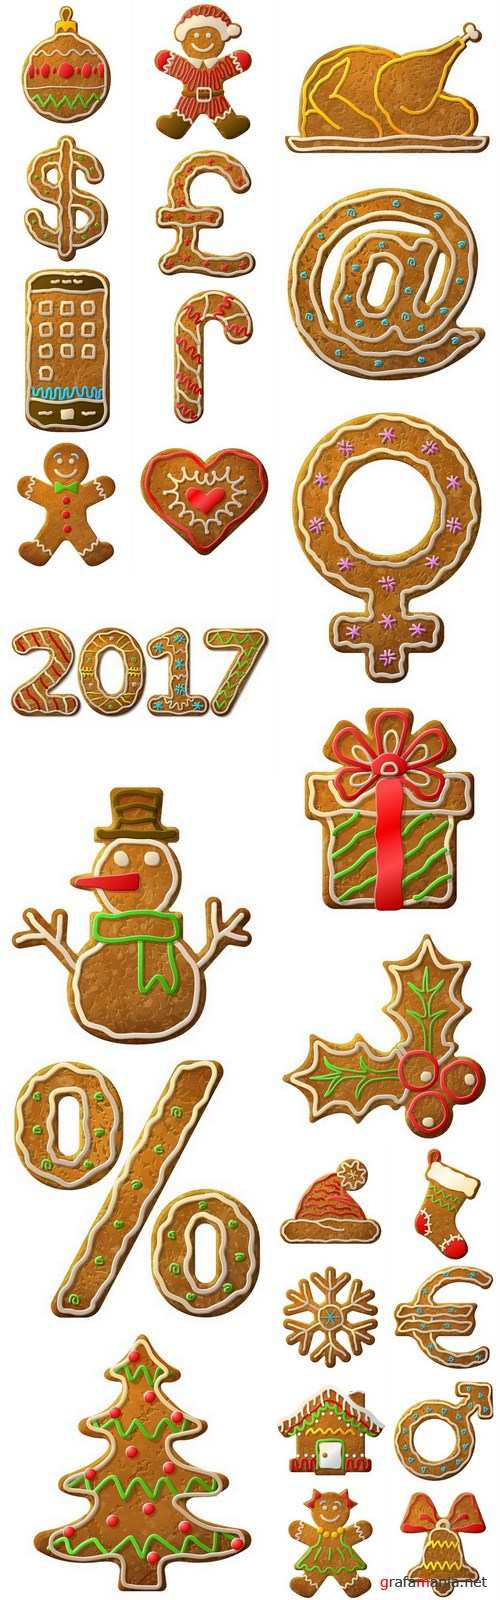 Gingerbread Christmas - Holiday cookie, 25xEPS Vector Stock